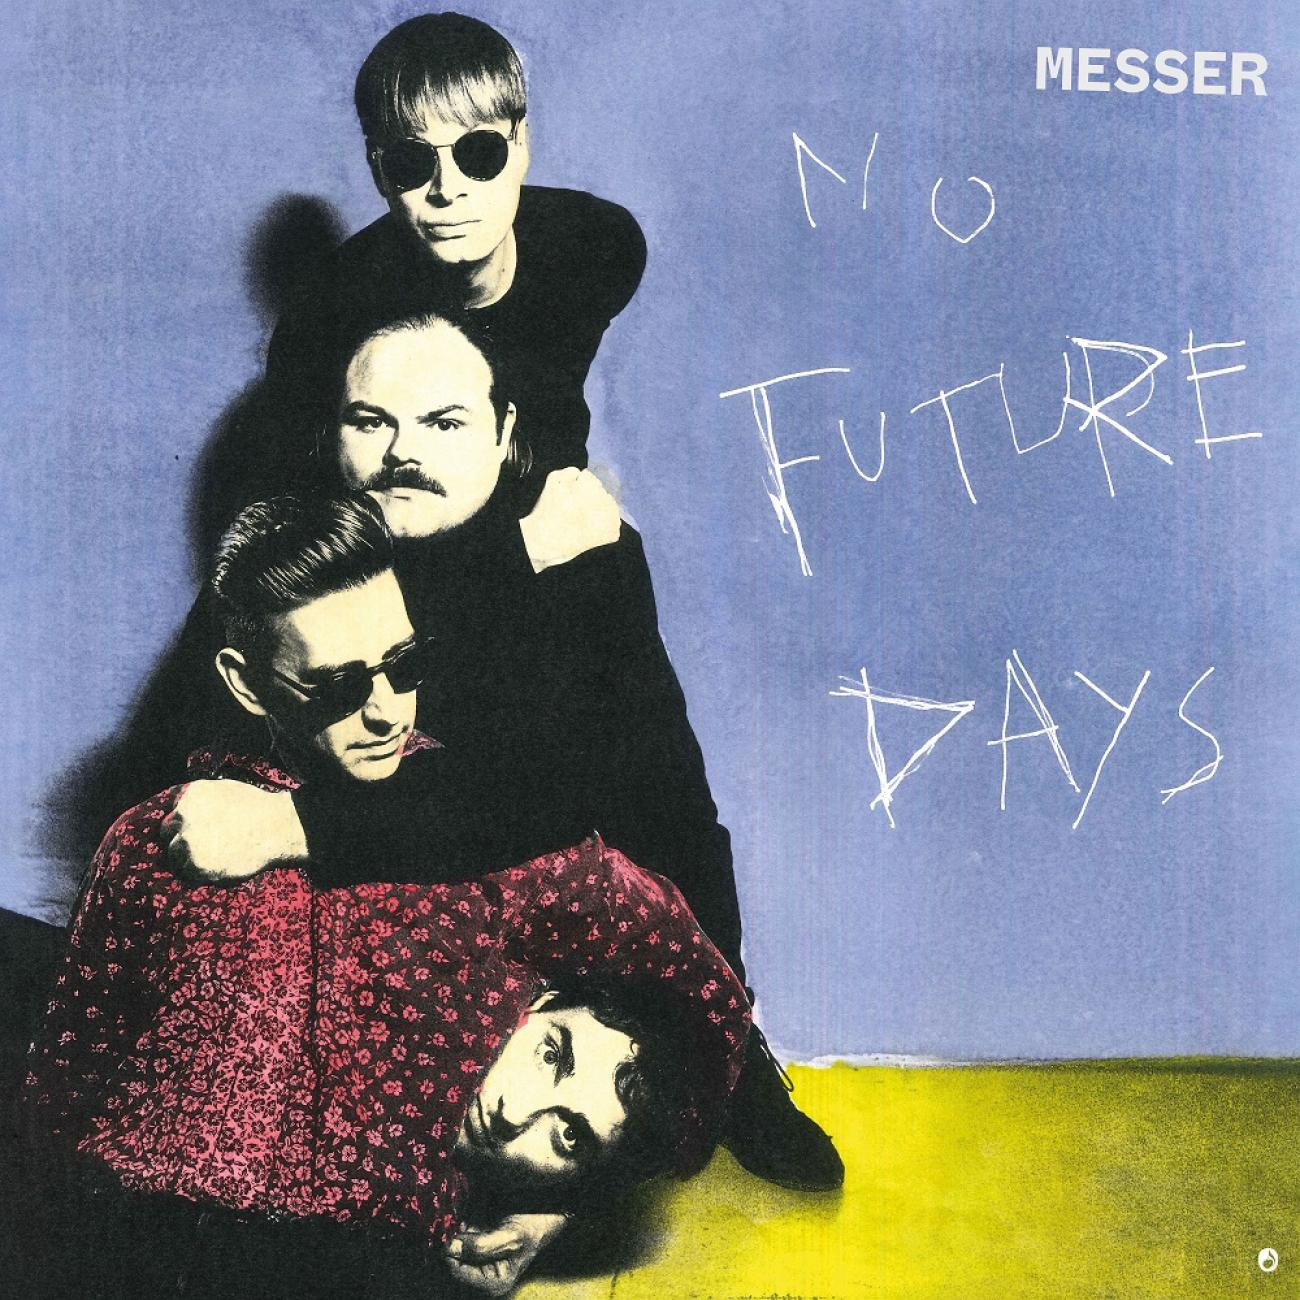 Messer - No future days